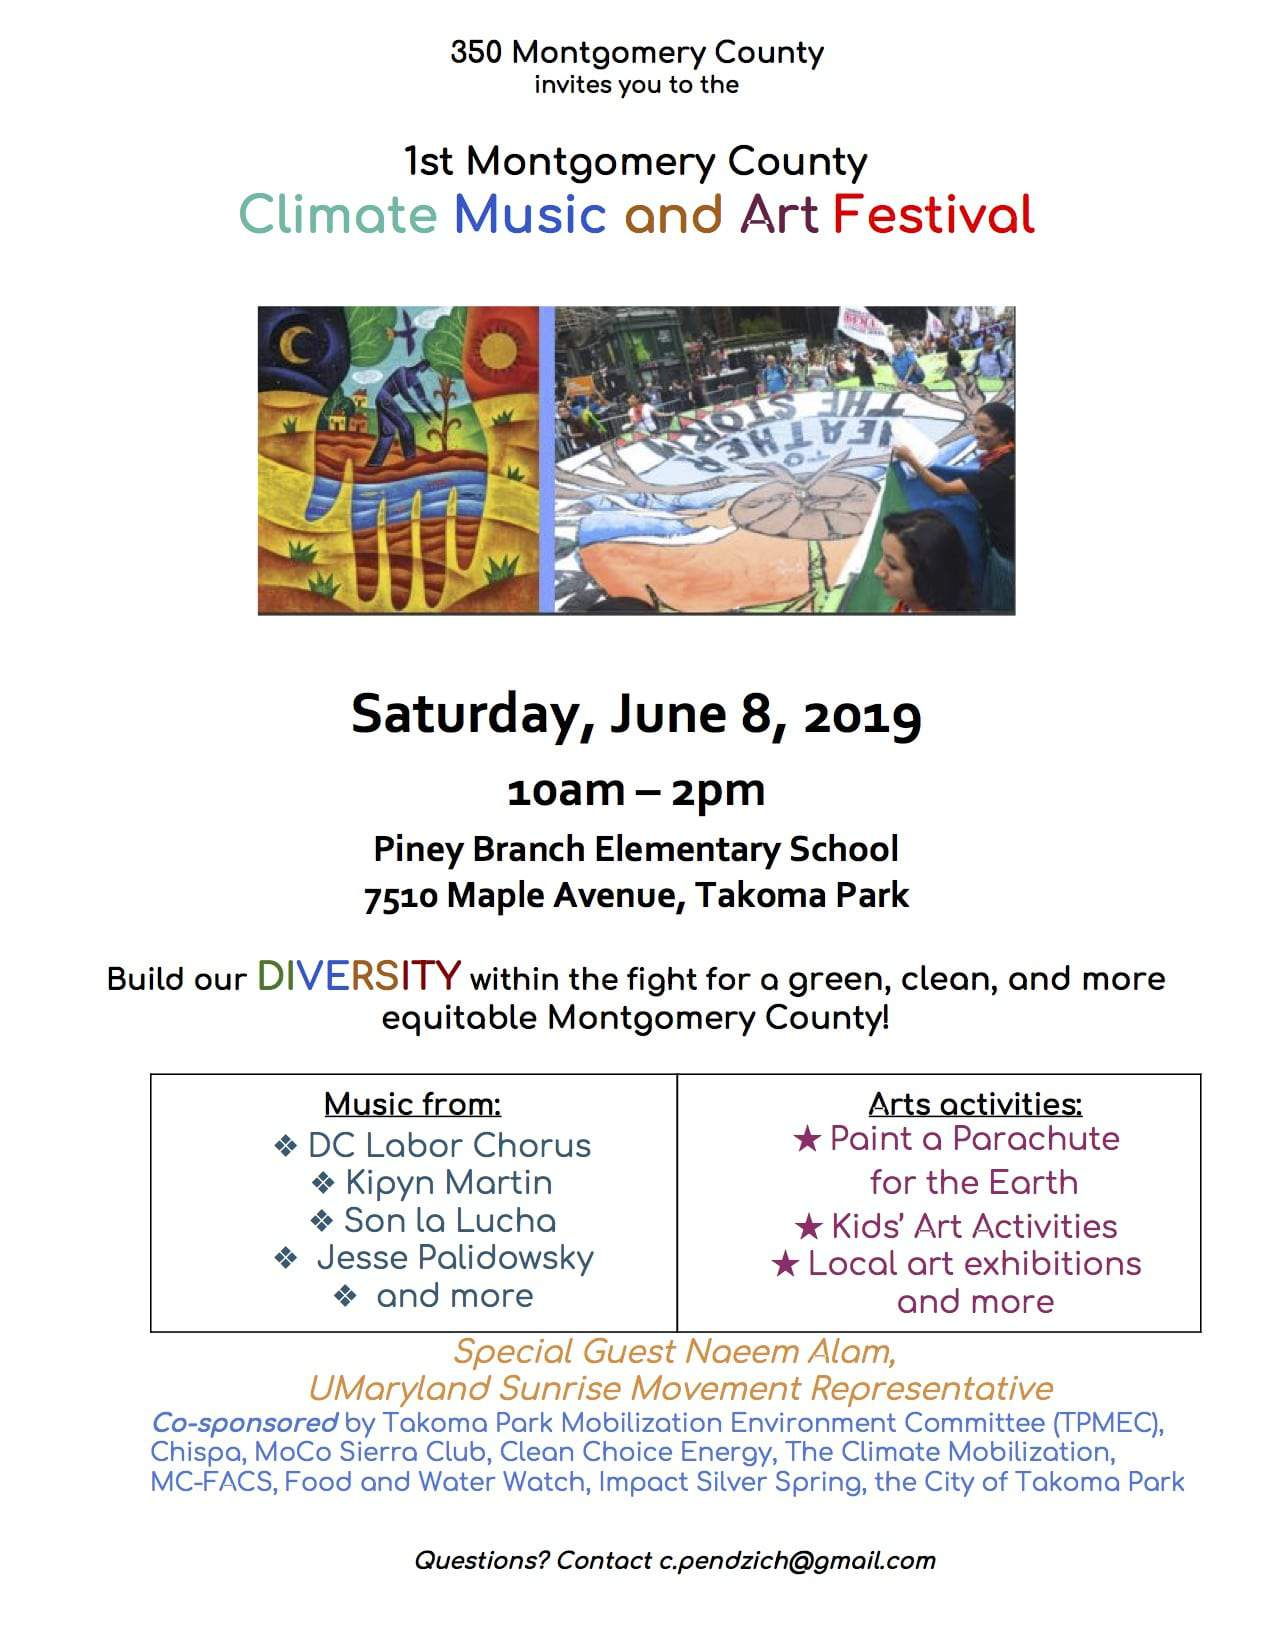 Montgomery County Climate Music and Art Festival